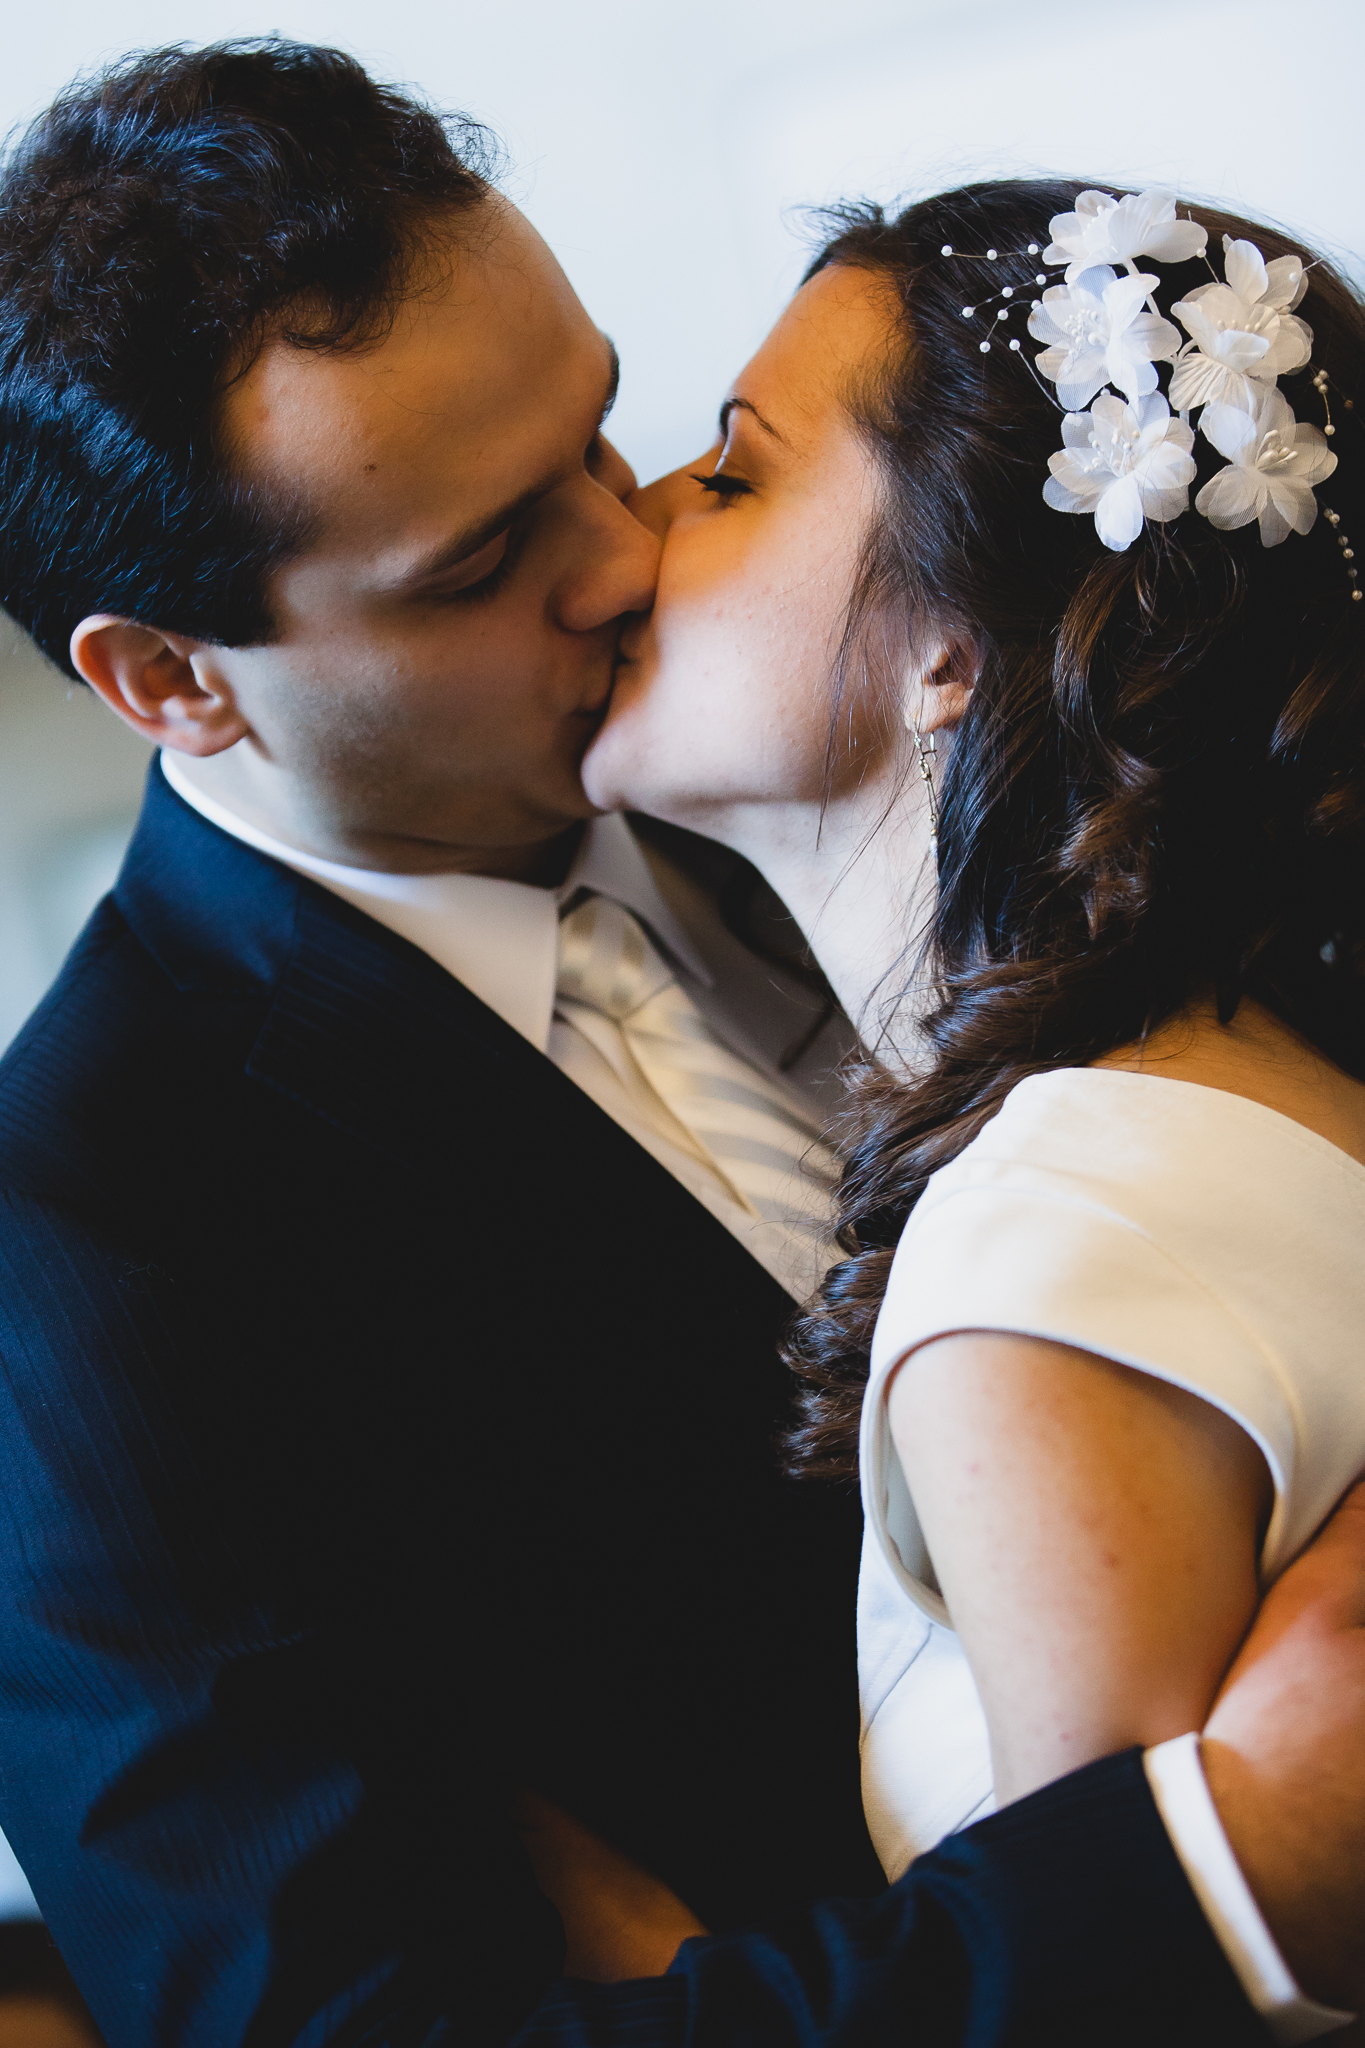 Toronto Wedding Photography - Zoya & Alexei -19.jpg